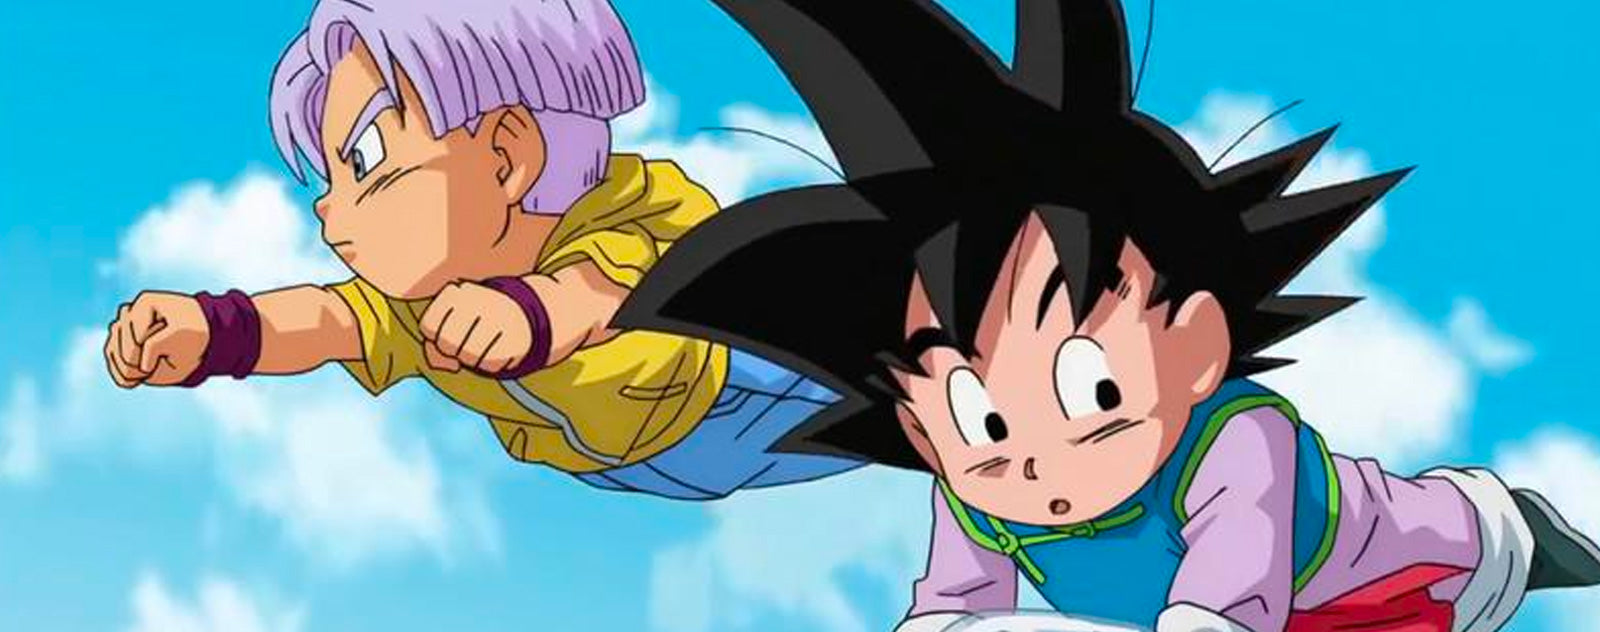 Trunks n'a pas de queue